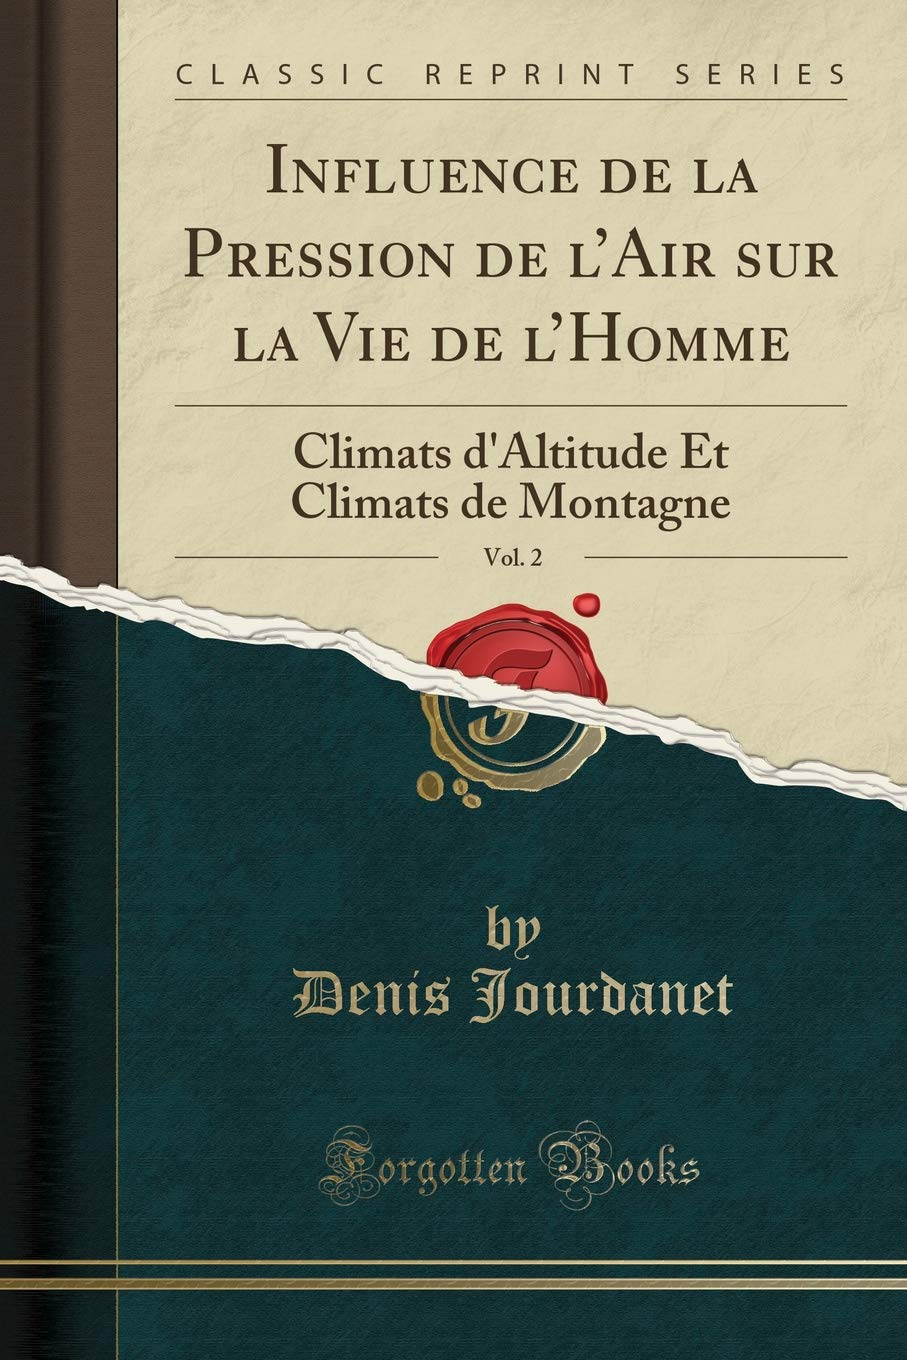 Download Influence de la Pression de l'Air sur la Vie de l'Homme, Vol. 2: Climats d'Altitude Et Climats de Montagne (Classic Reprint) (French Edition) PDF